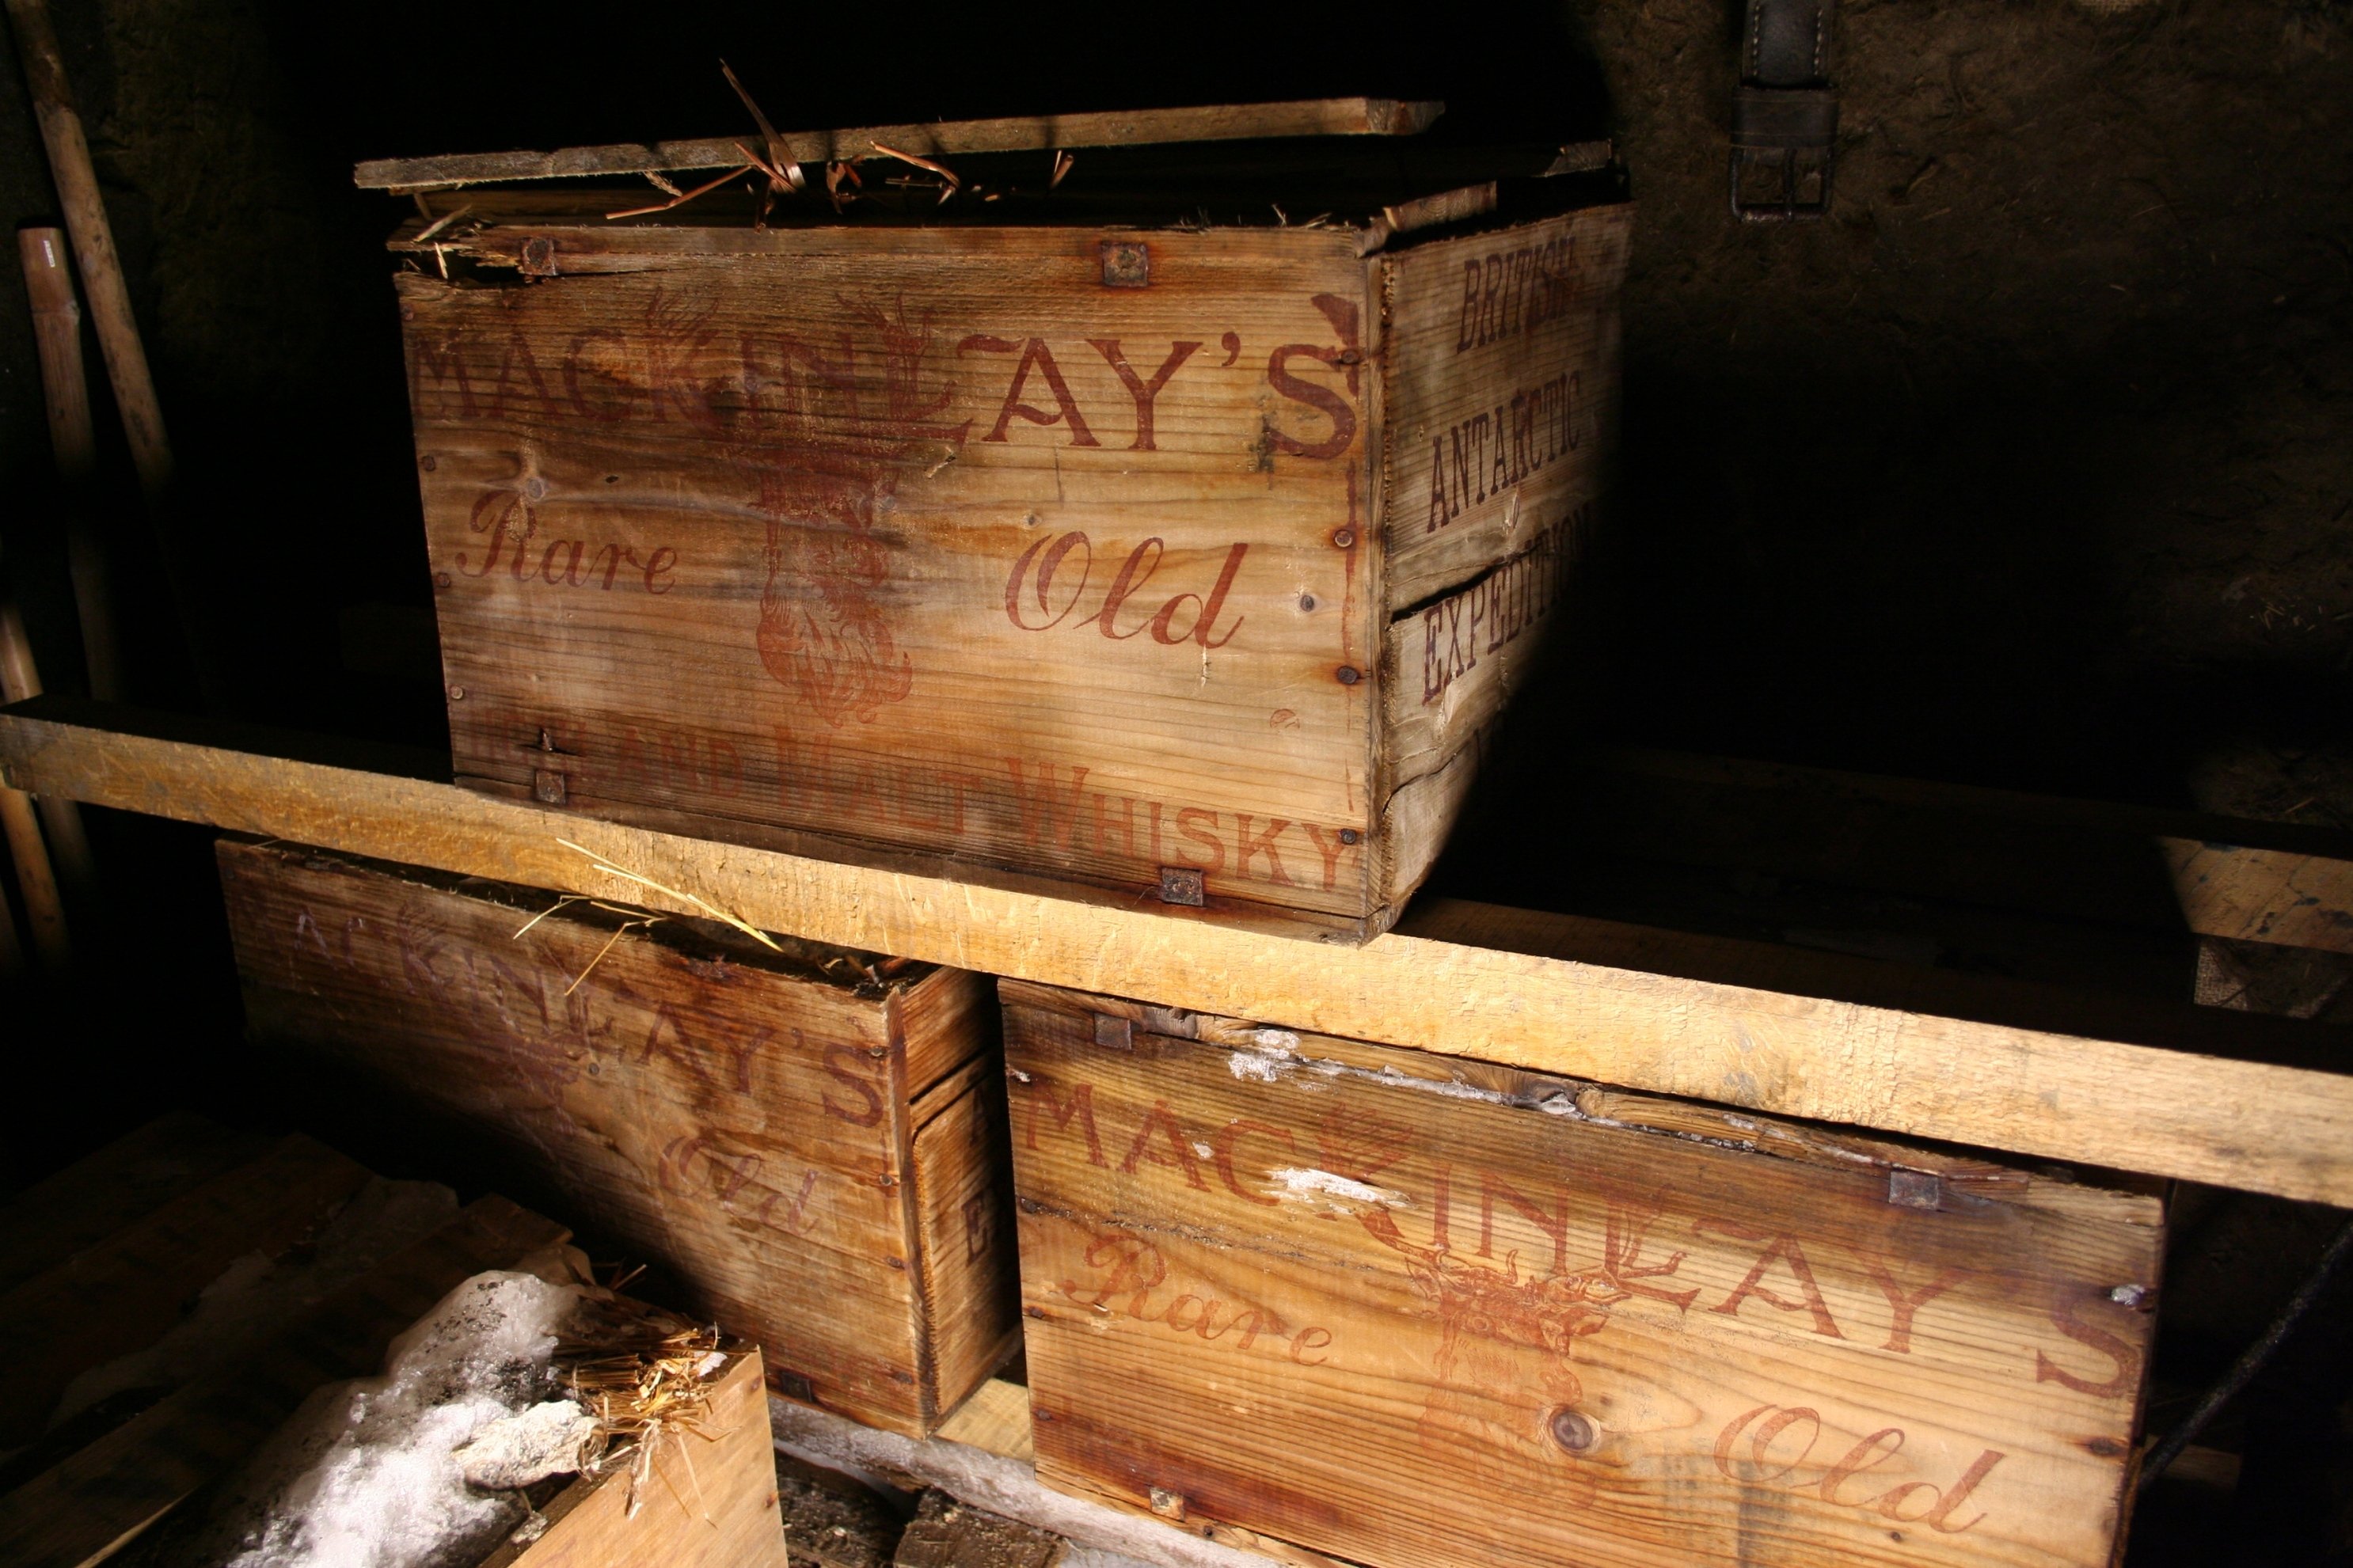 Year Old Whisky And Brandy Crates Excavated In Antarctica - 100 year old photos antarctica